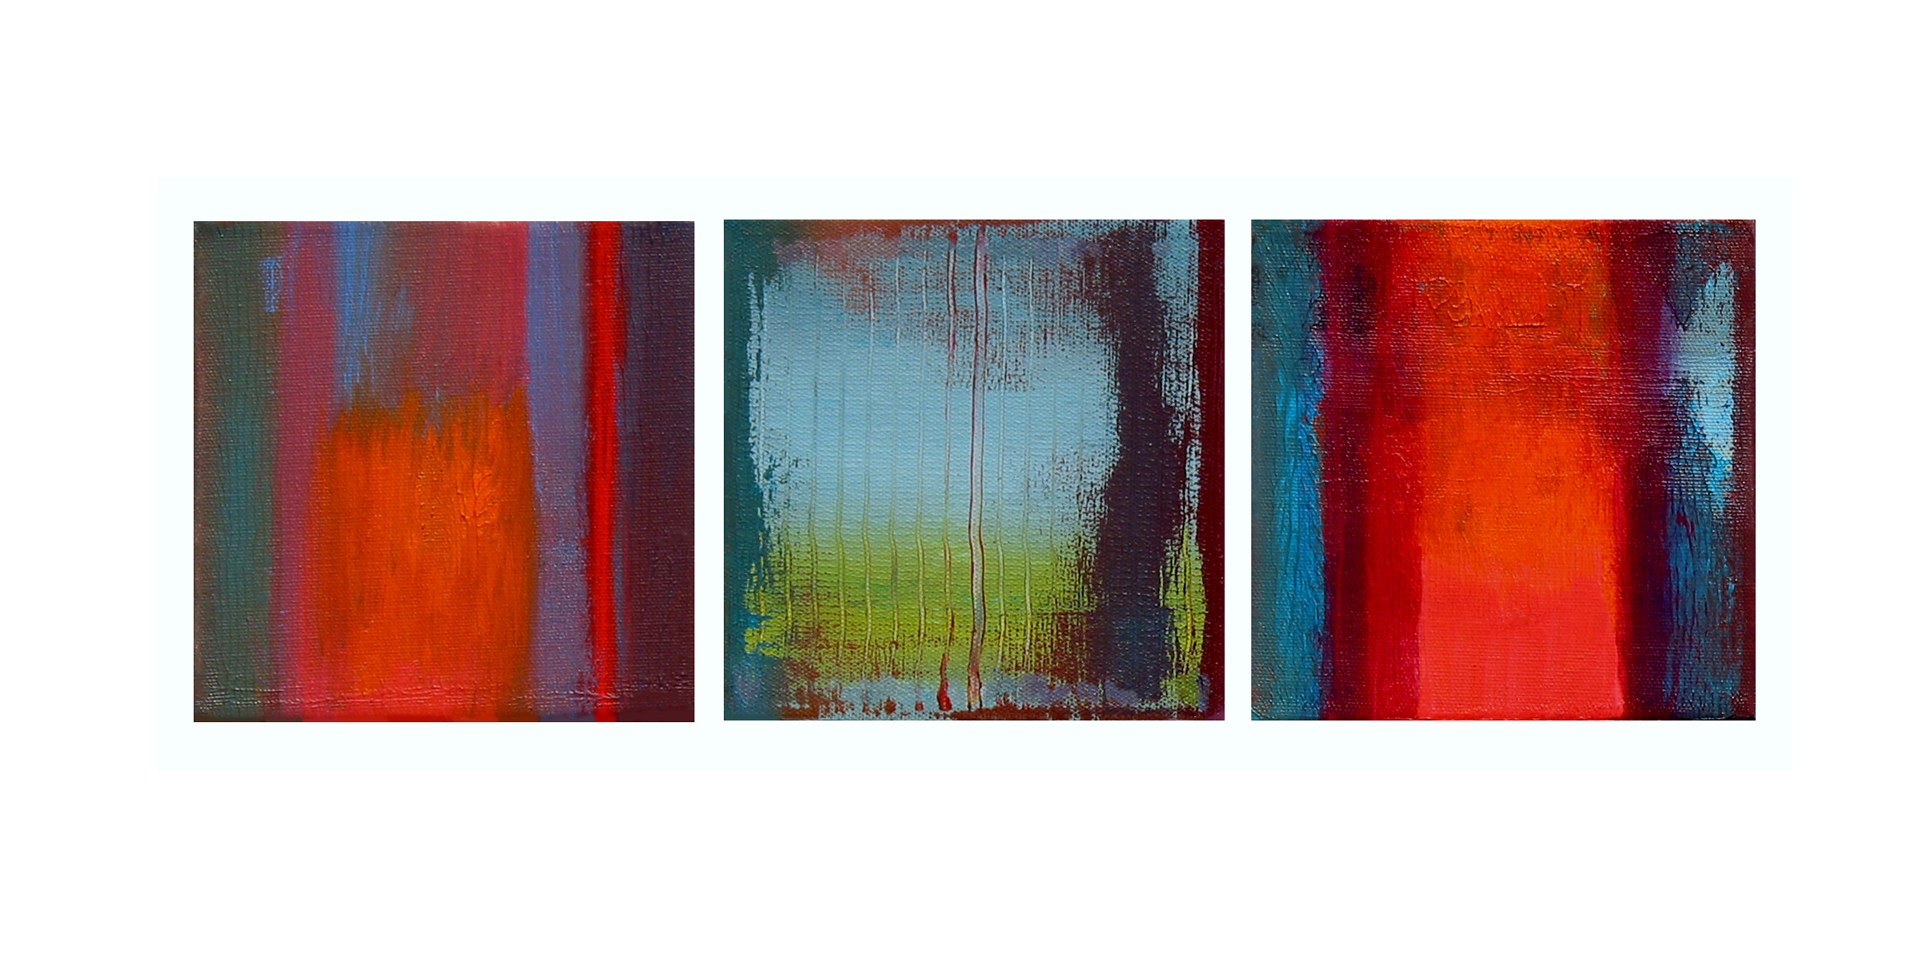 Acrylic painting Fall Landscape, 6x6 inches each by Hooshang Khorasani